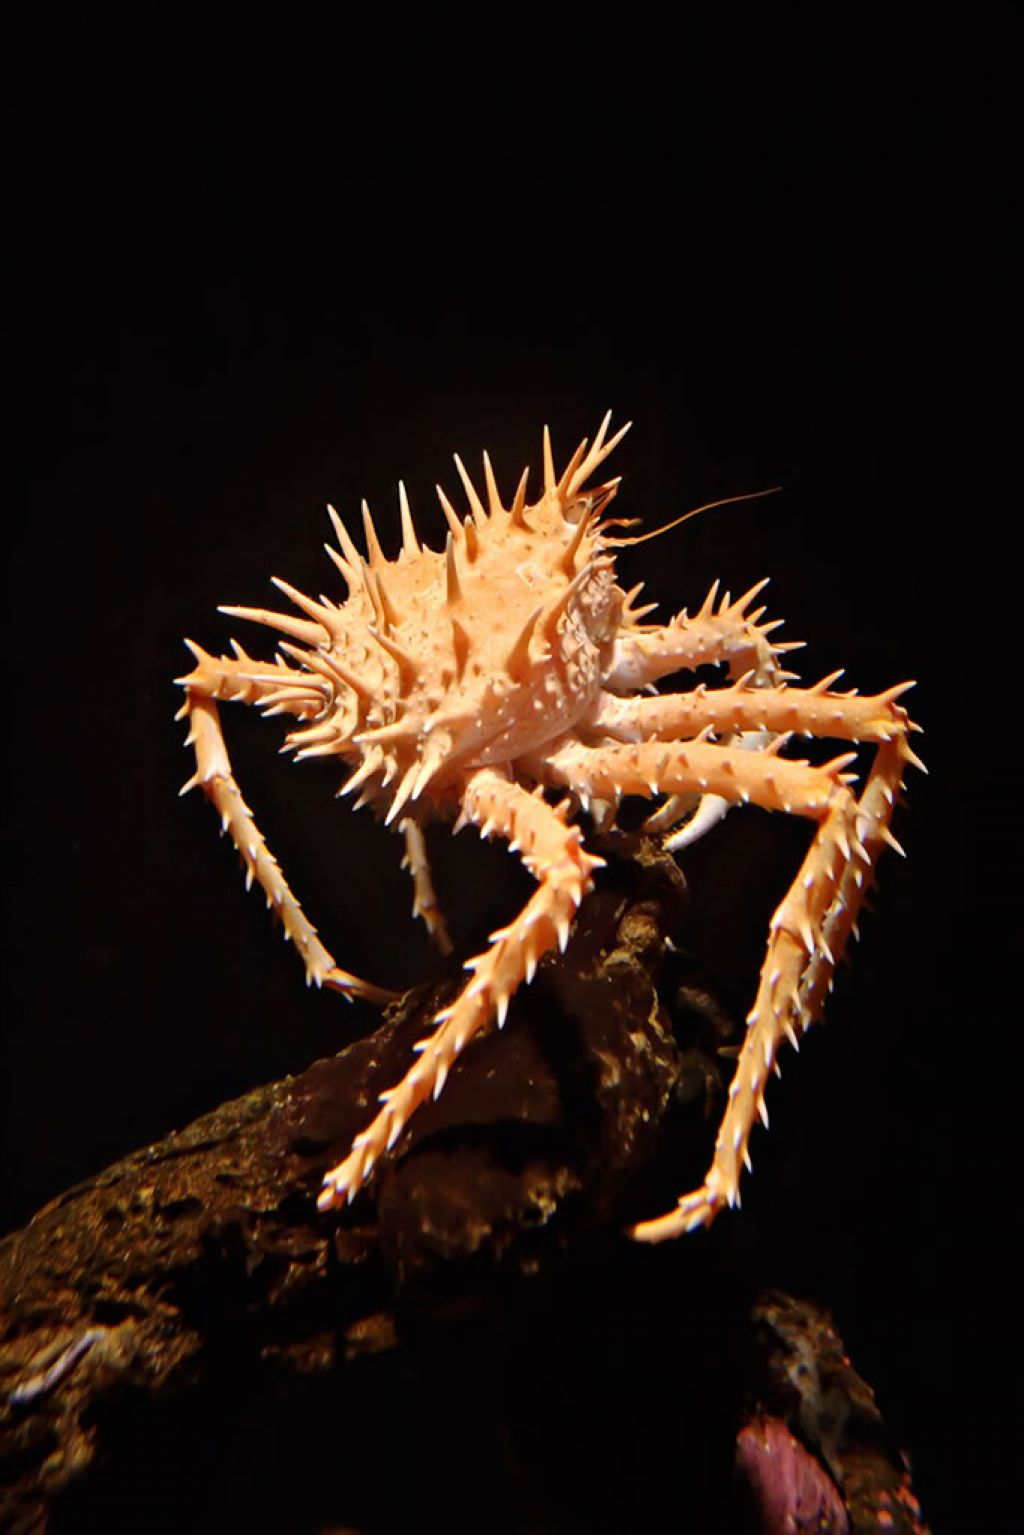 Spiny king crab (Paralithodes californiensis) perched on a rock - © Moondigger